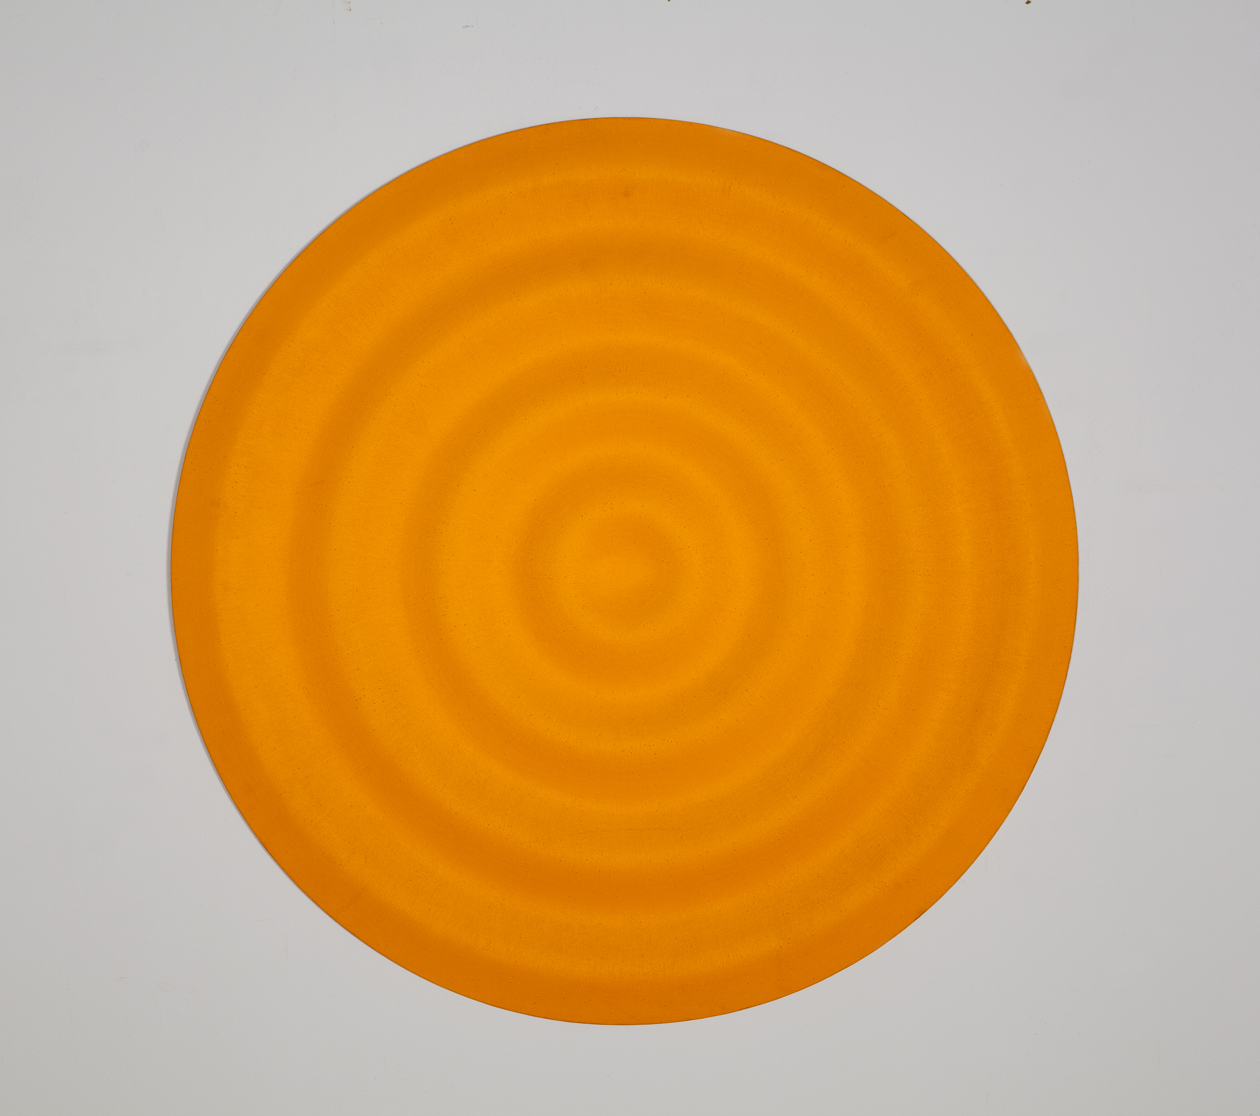 Copy of Rupert Deese, Four Waves I, 1997 oil on wood 32 inch diameter